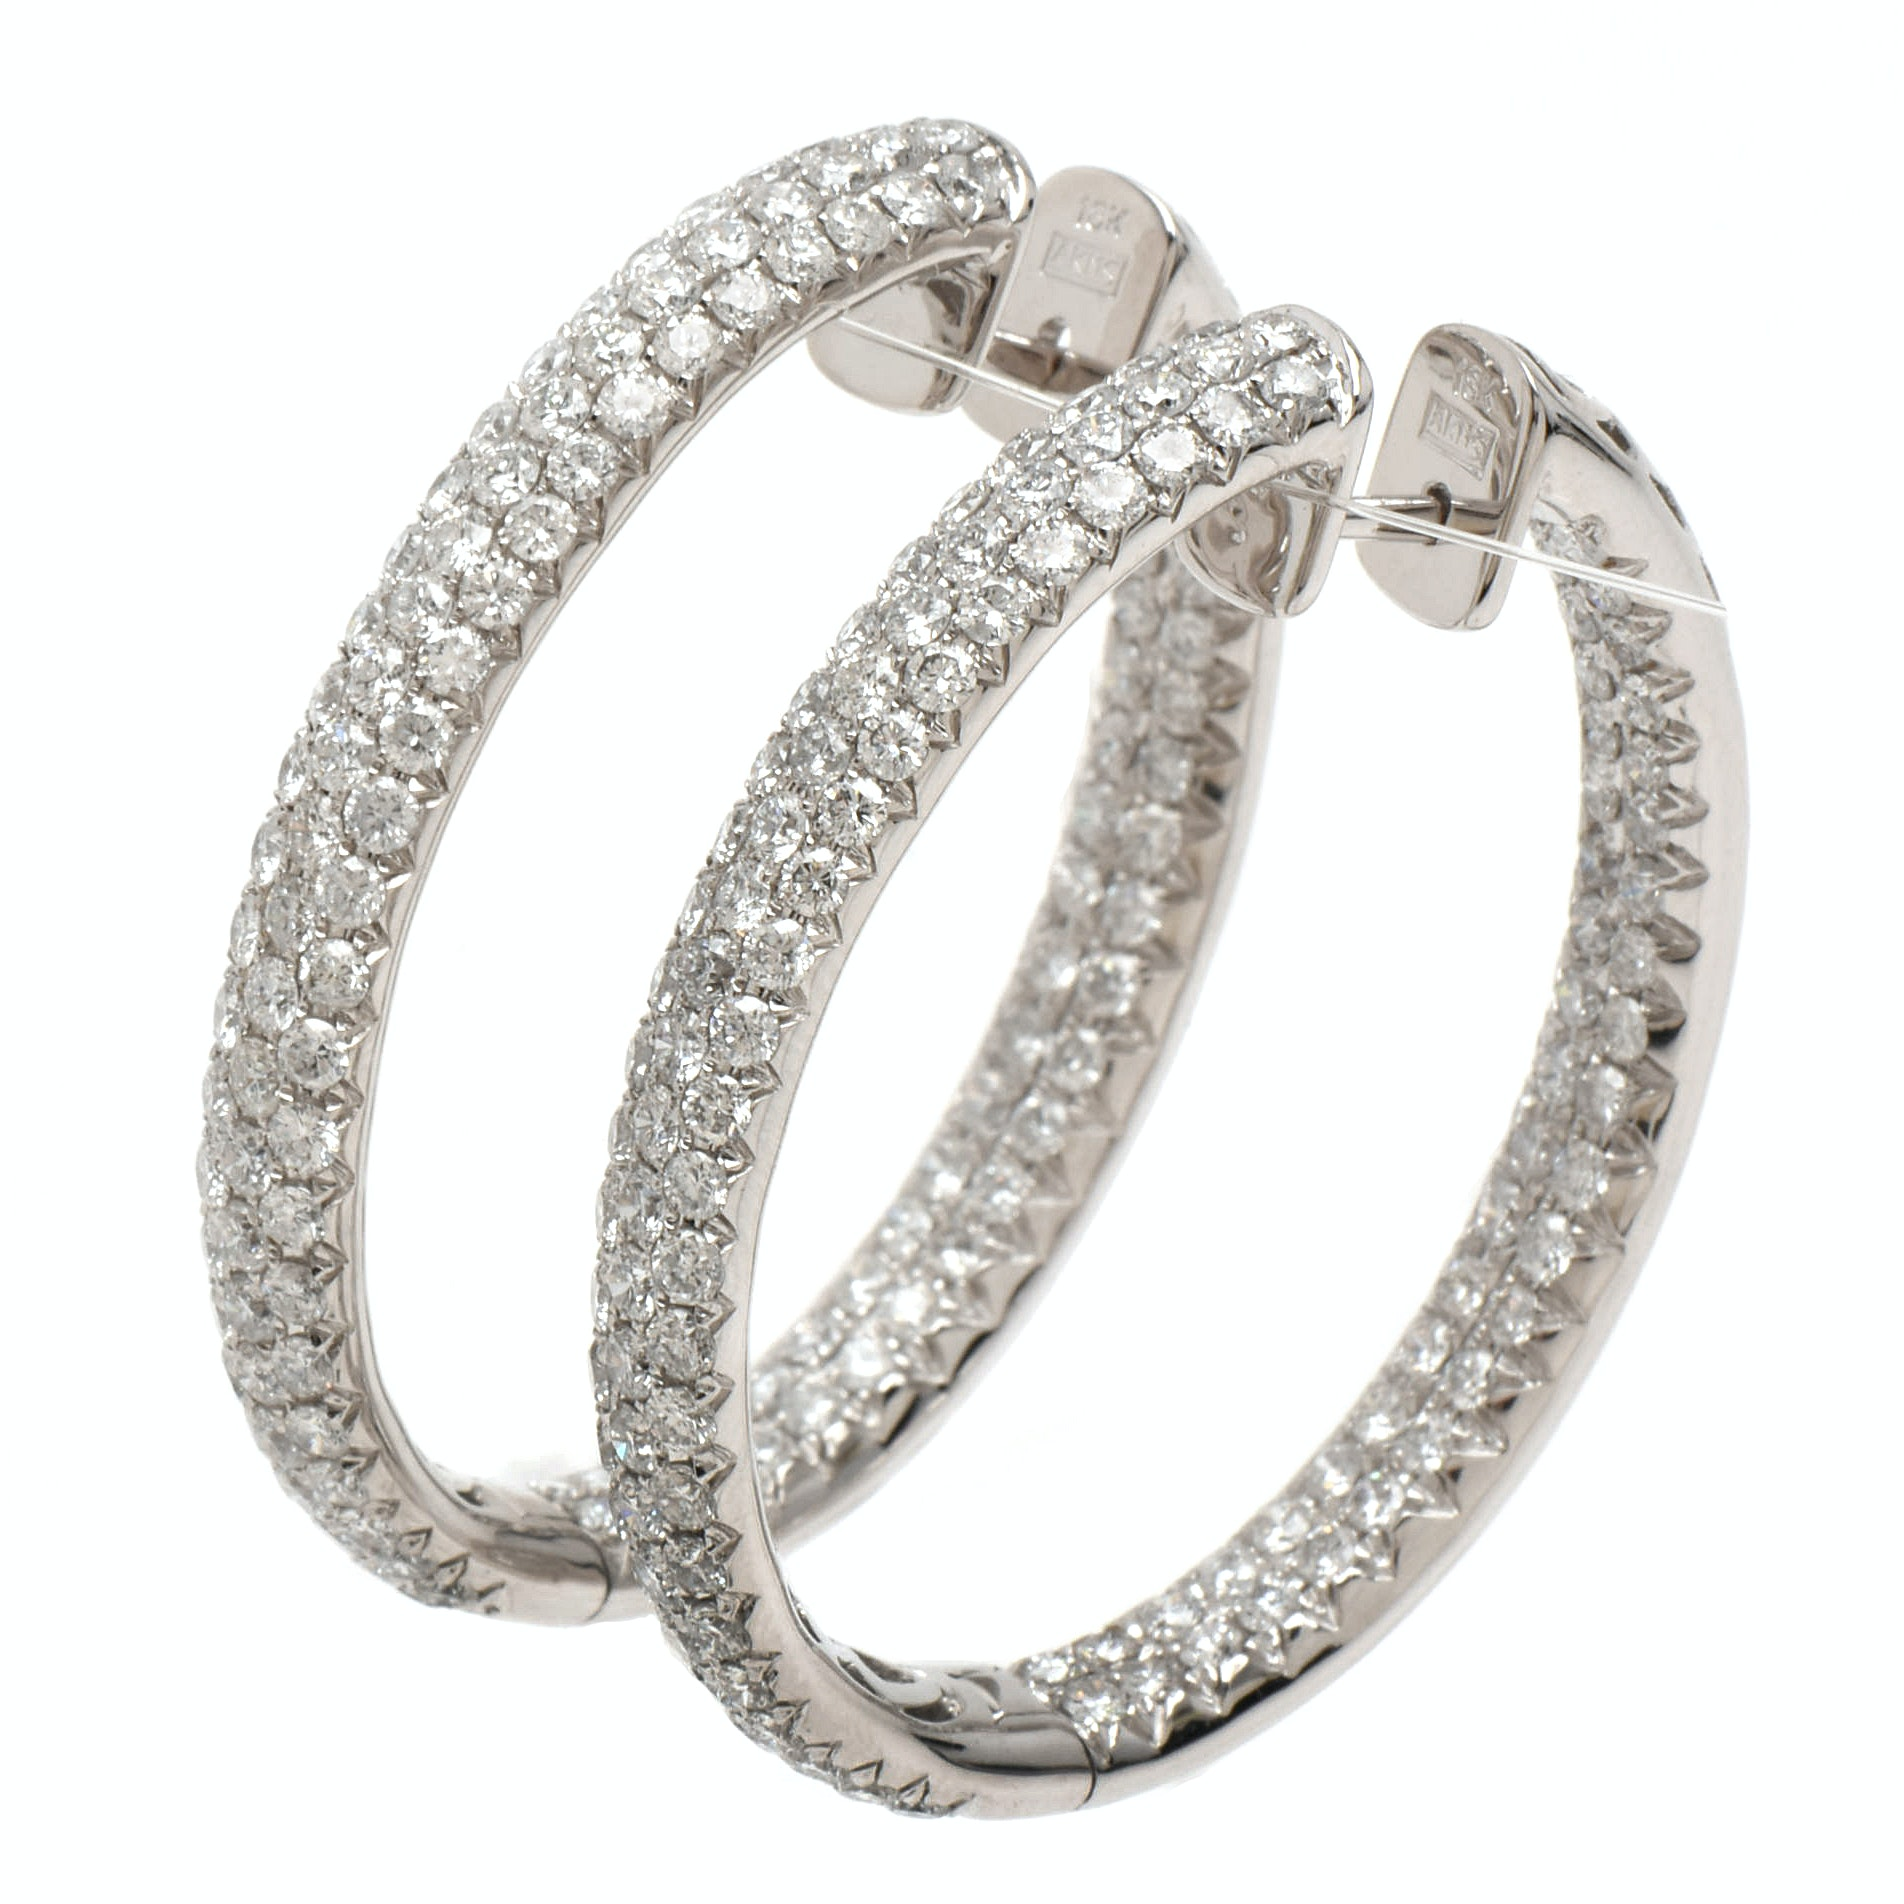 18K White Gold 7.29 CTW Diamond Hoop Earrings